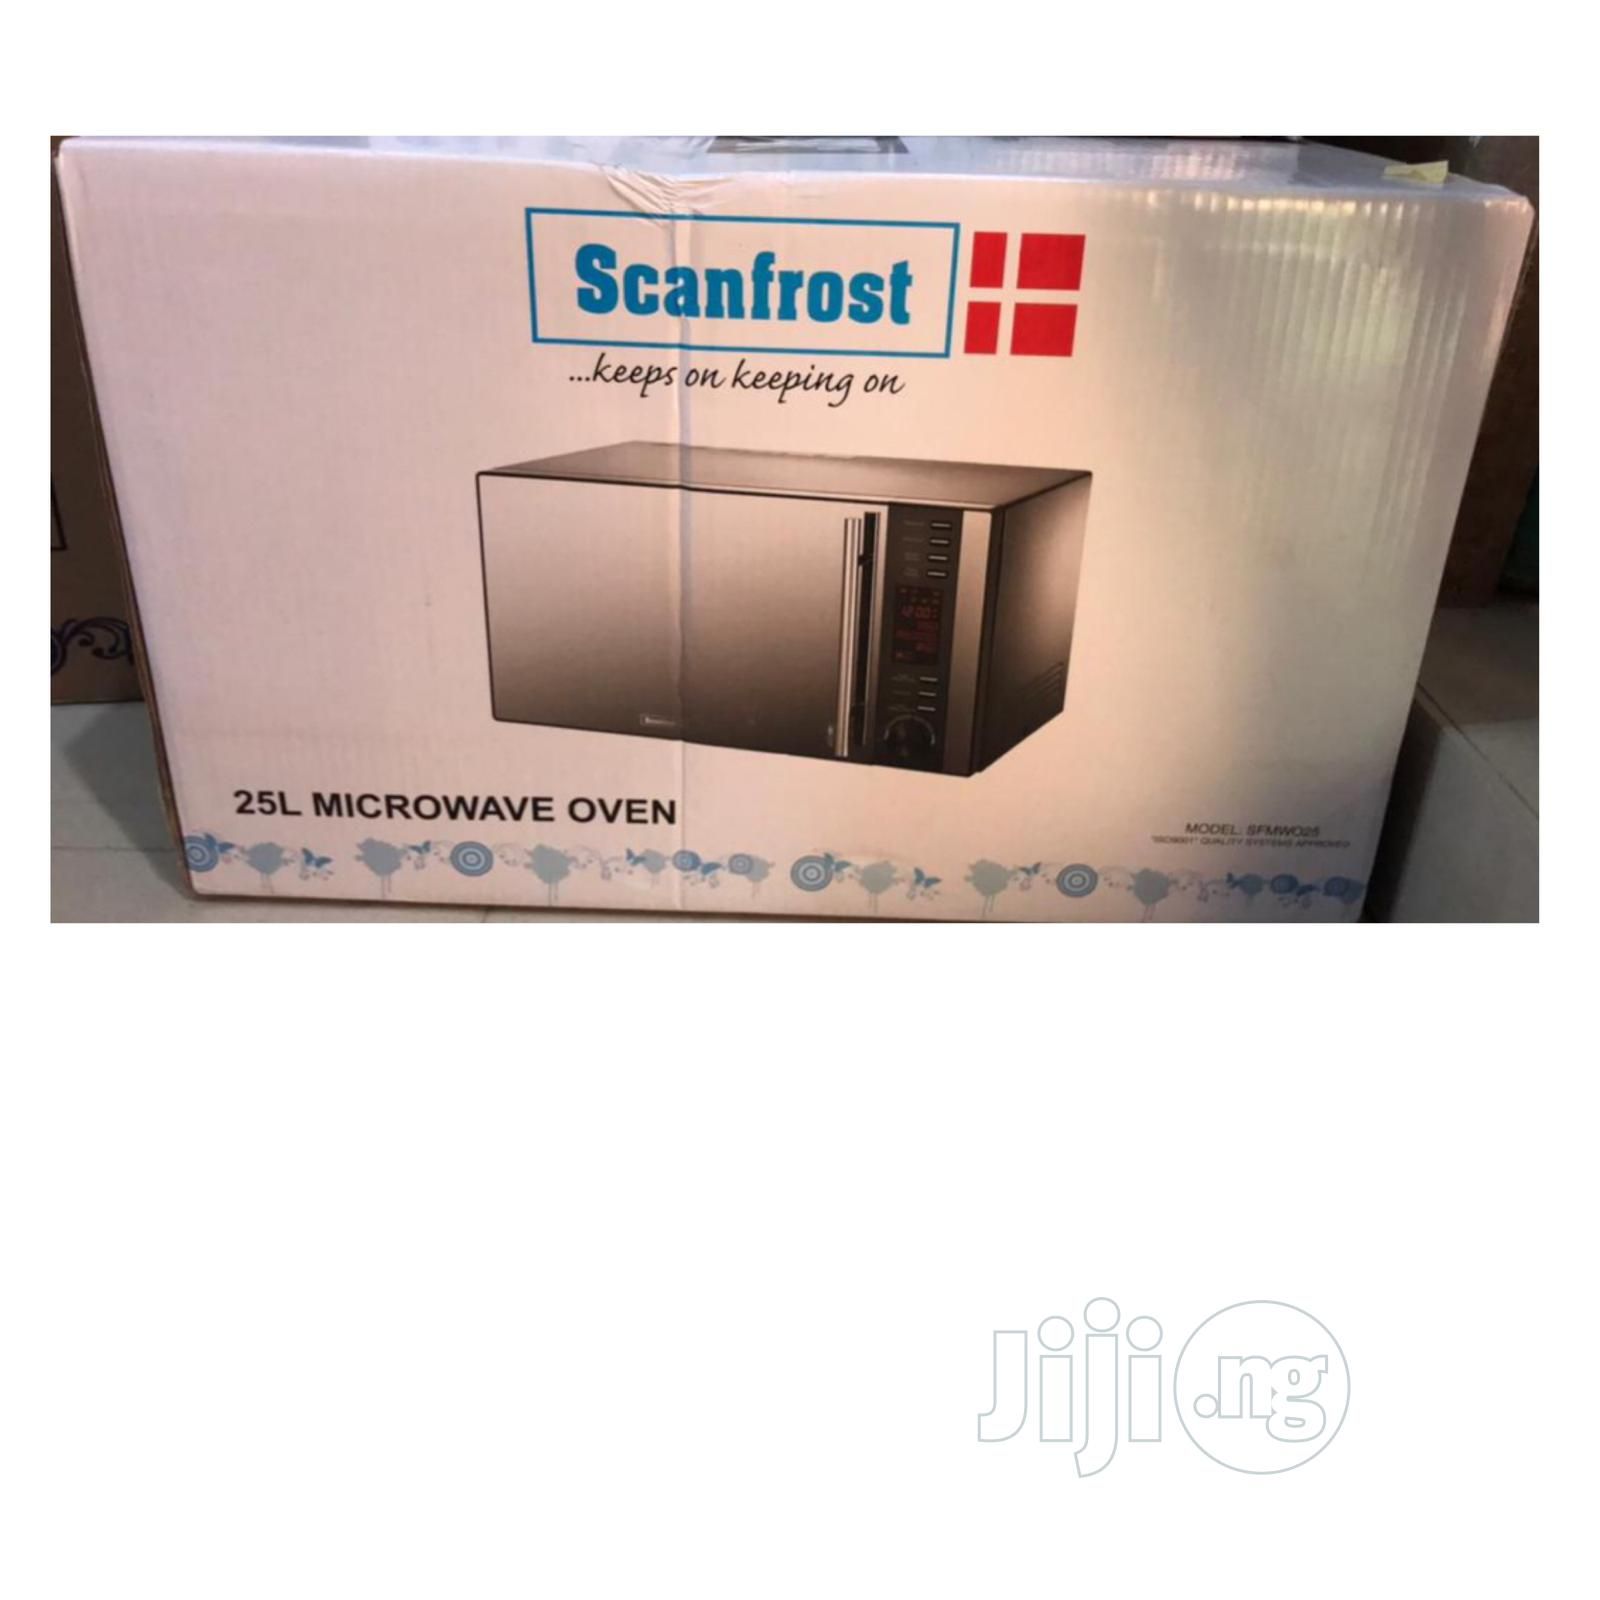 Scanfrost 15l Microwave Oven